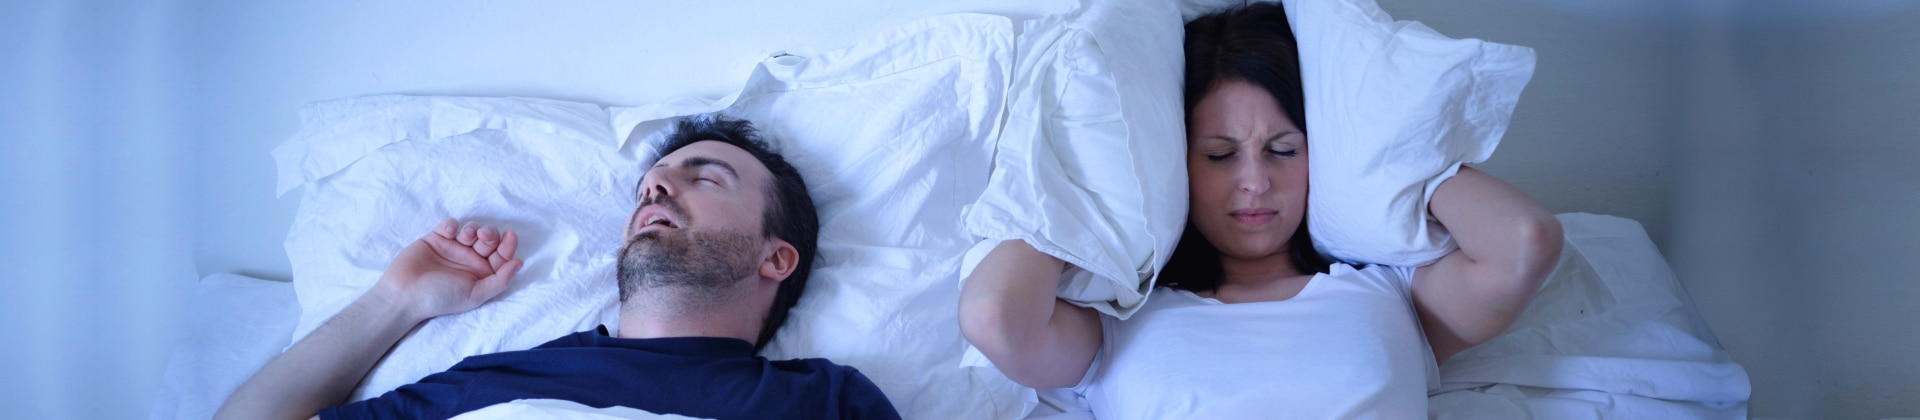 Sleep Apnea: A Comprehensive Guide To Diagnosing, Treating and Understanding the Condition